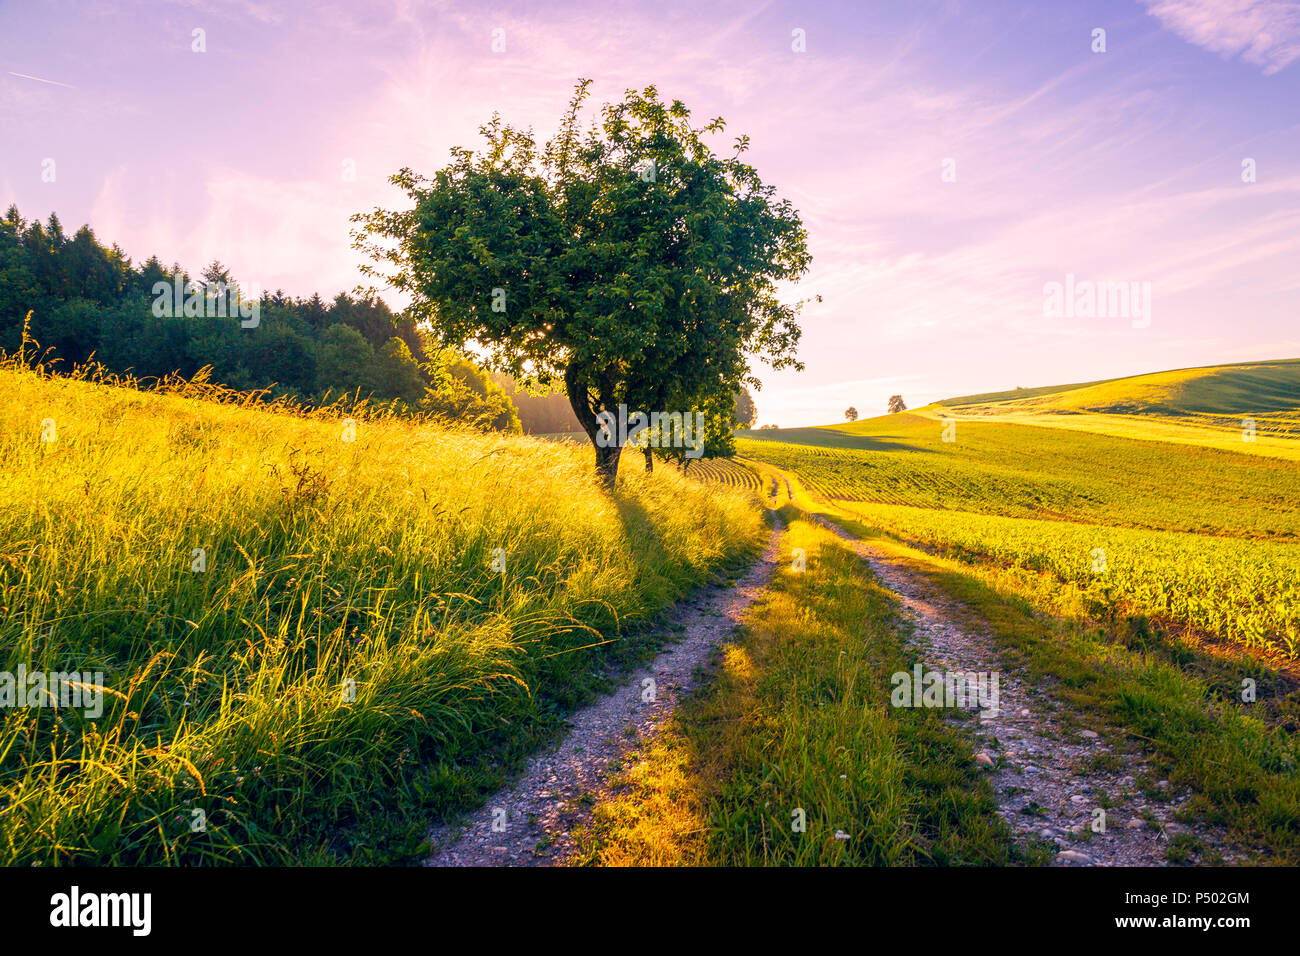 Austria, Innviertel, field and dirt track in the morning - Stock Image